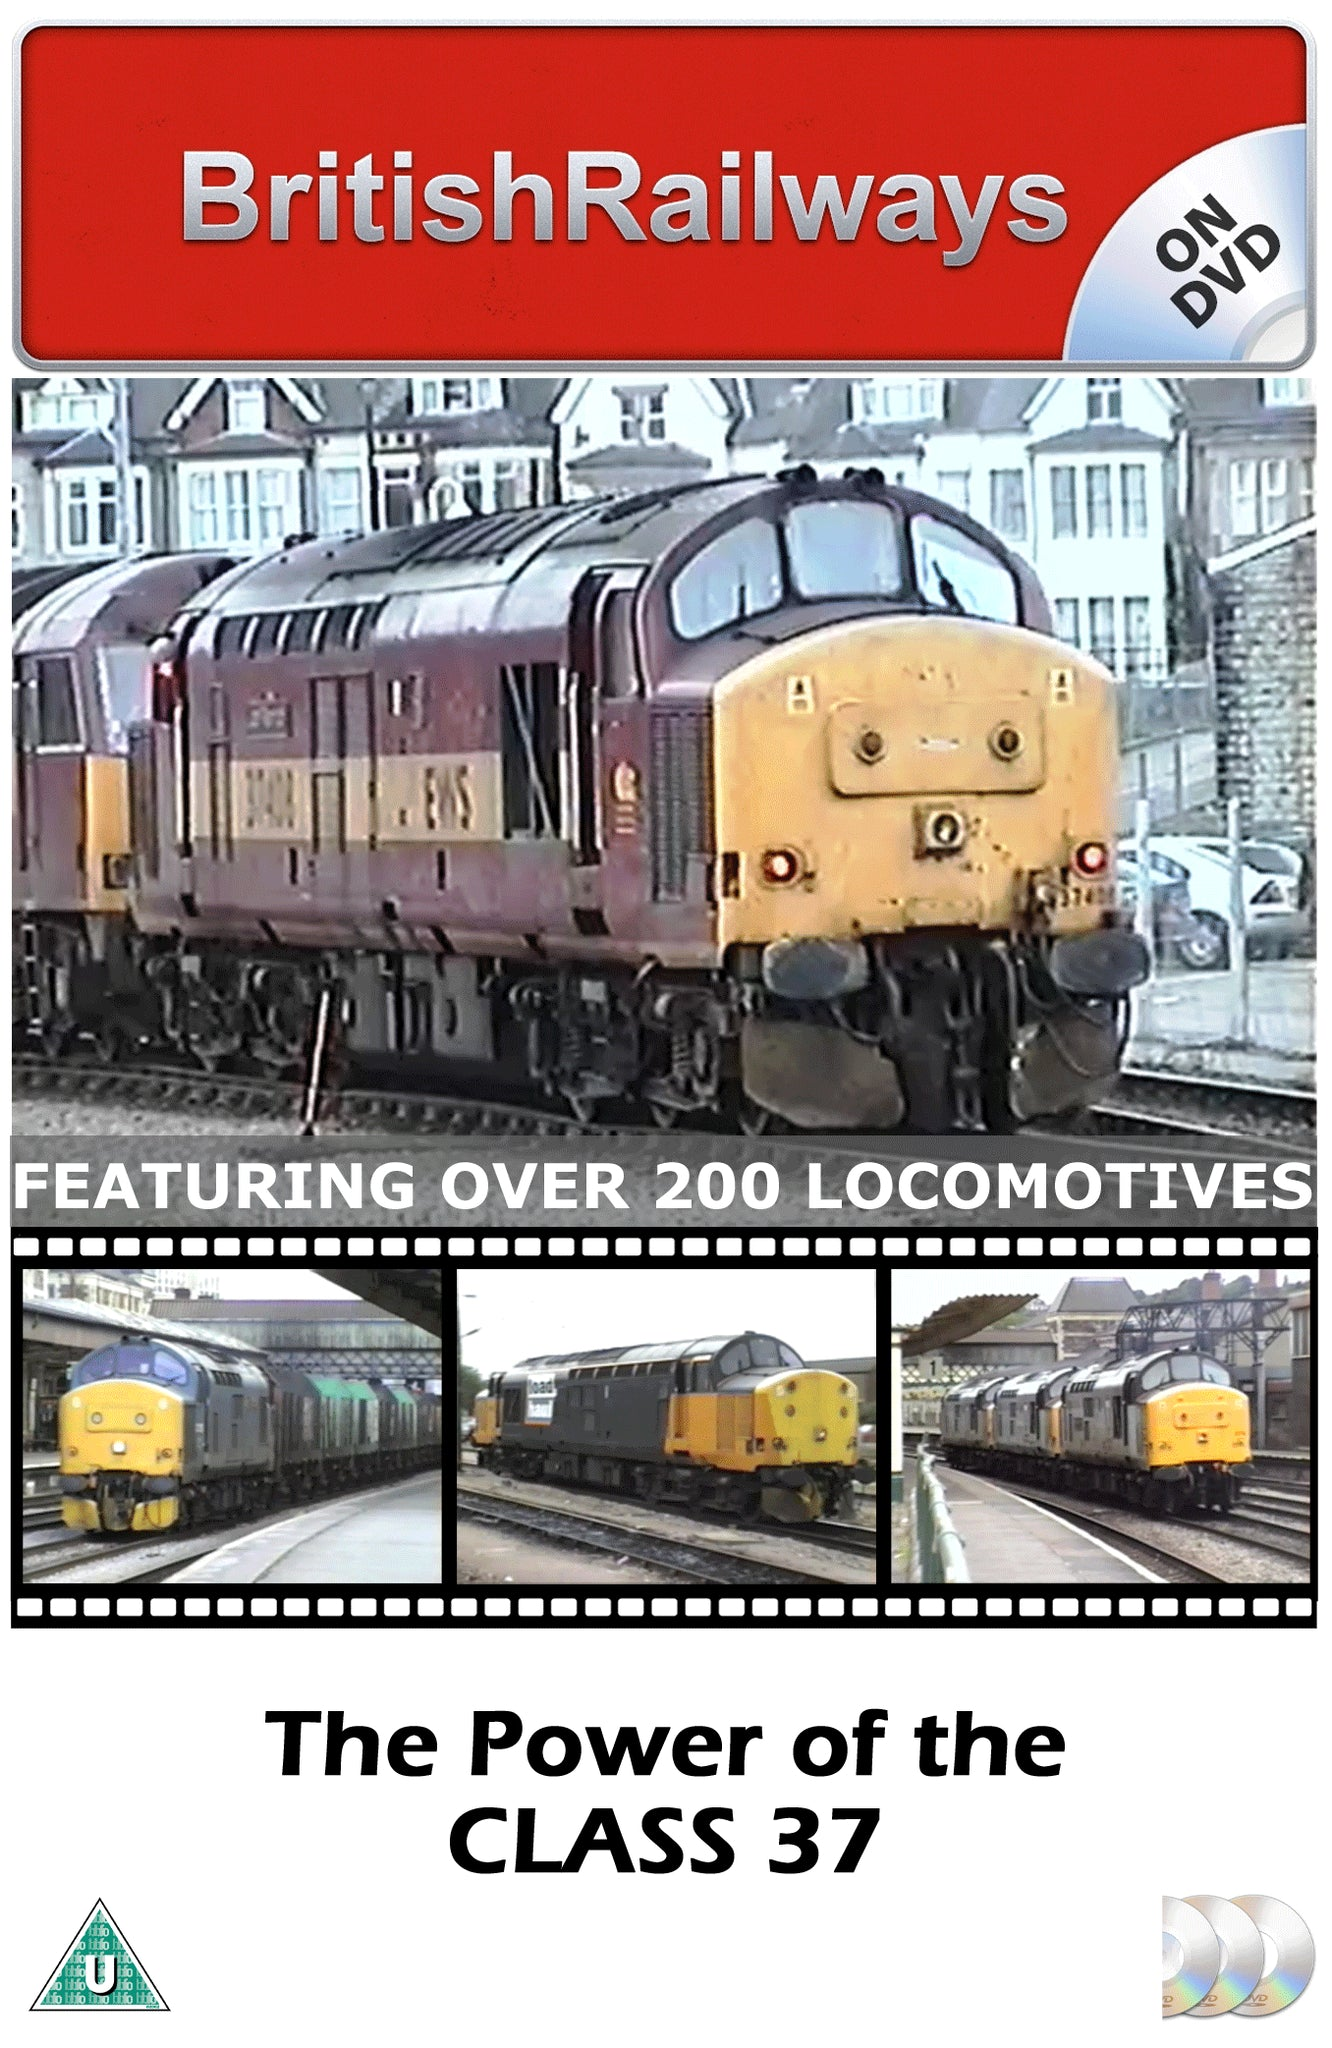 The Power of the Class 37